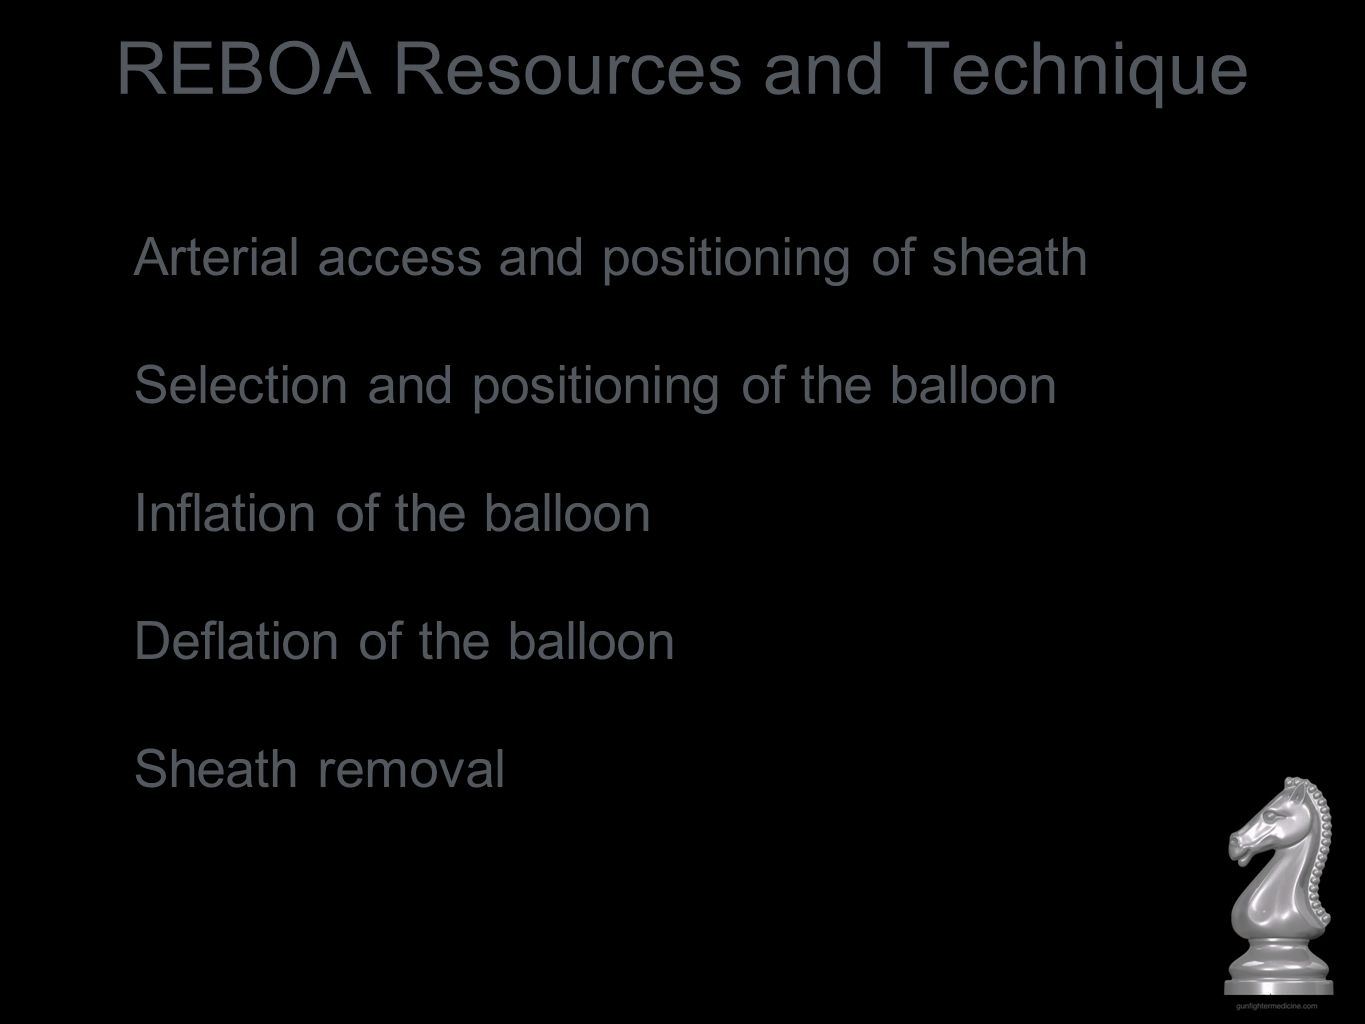 REBOA Resources and Technique